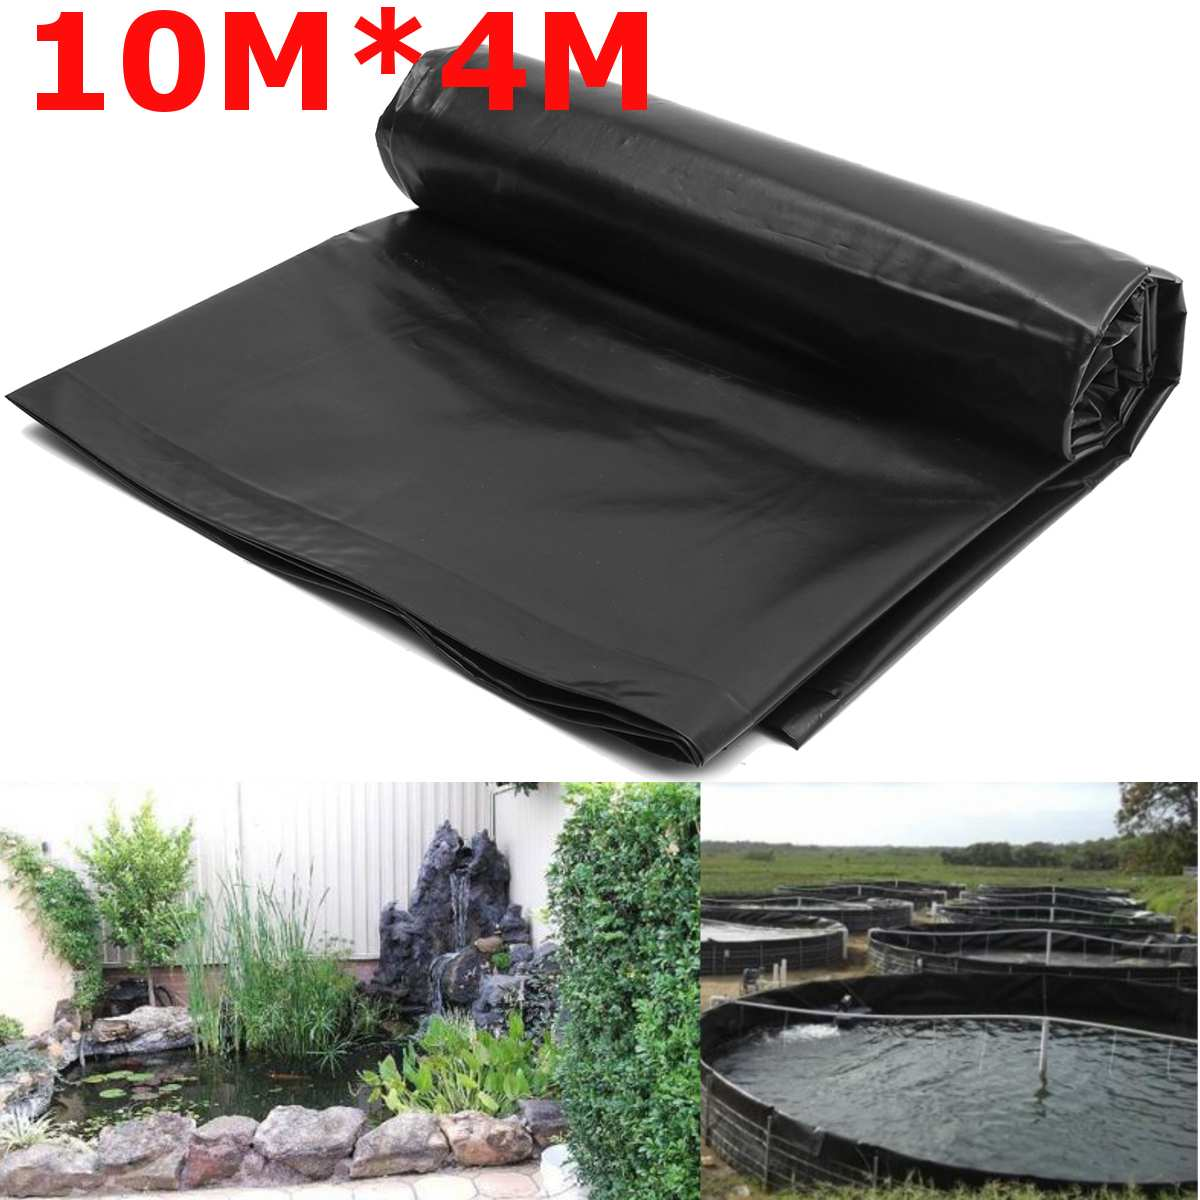 10x4m Fish Pond Liner Cloth Home Garden Pool Reinforced HDPE Heavy   Landscaping Pool Pond Waterproof Liner Cloth Black New